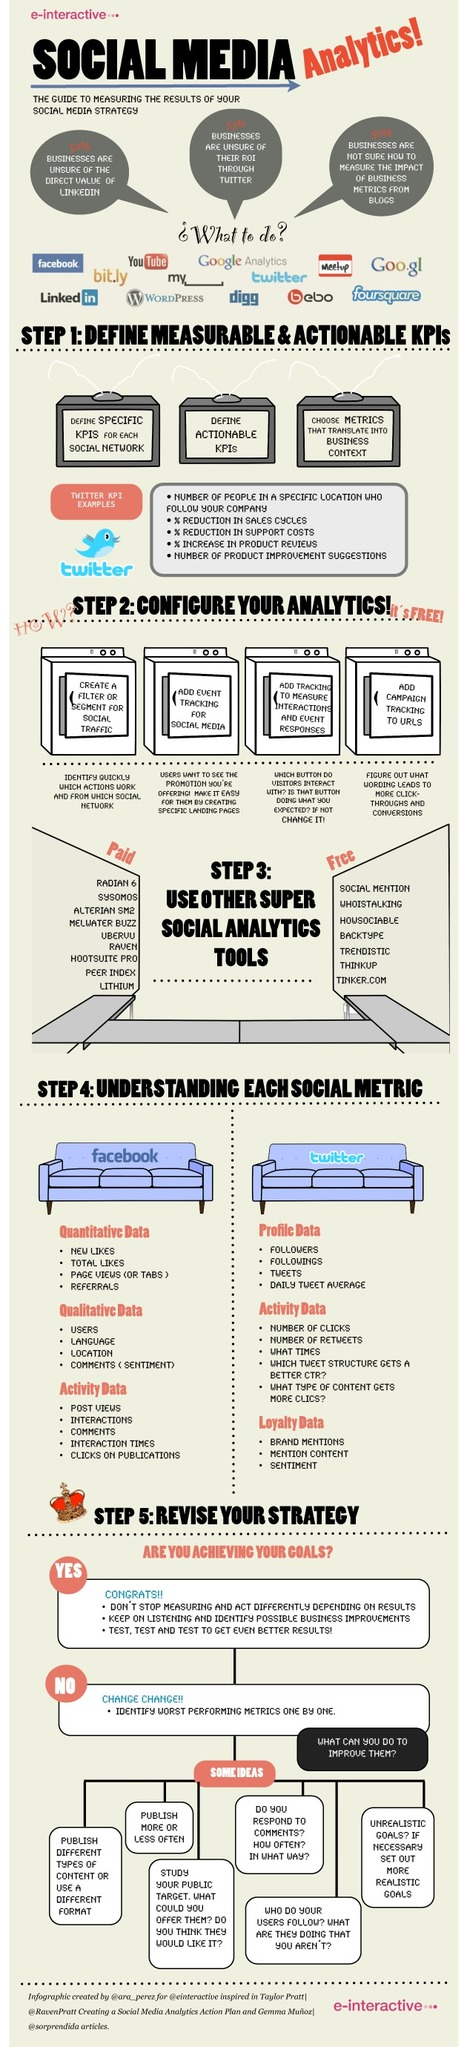 Measure Your Social Media Strategy with this Great Guide [Infographic] | Social Media, Business and Leadership | Scoop.it